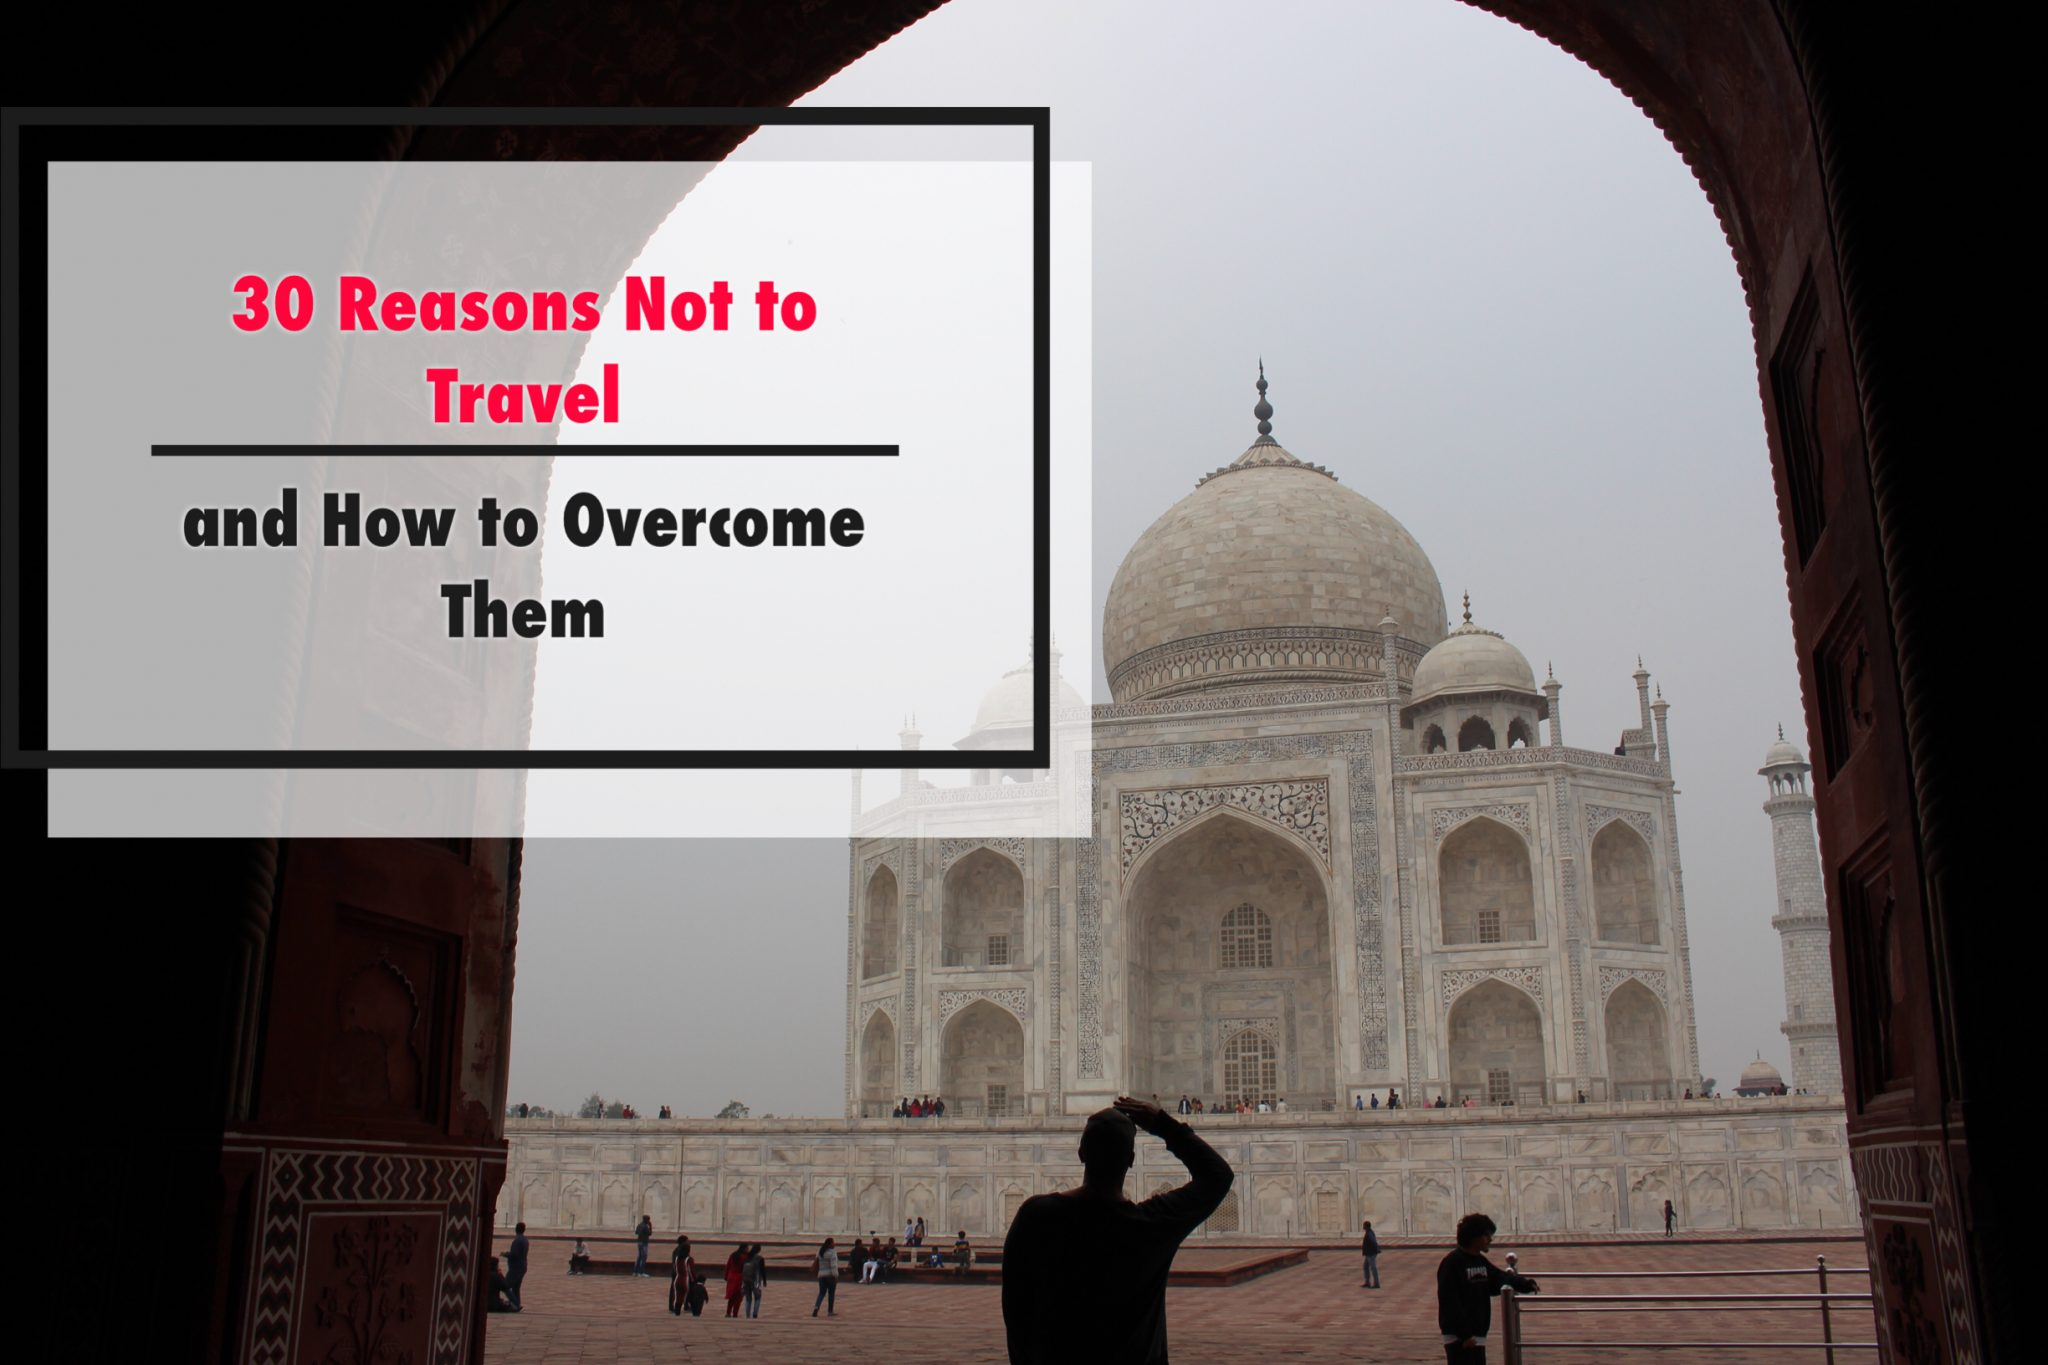 30 reasons not to travel and how to overcome them